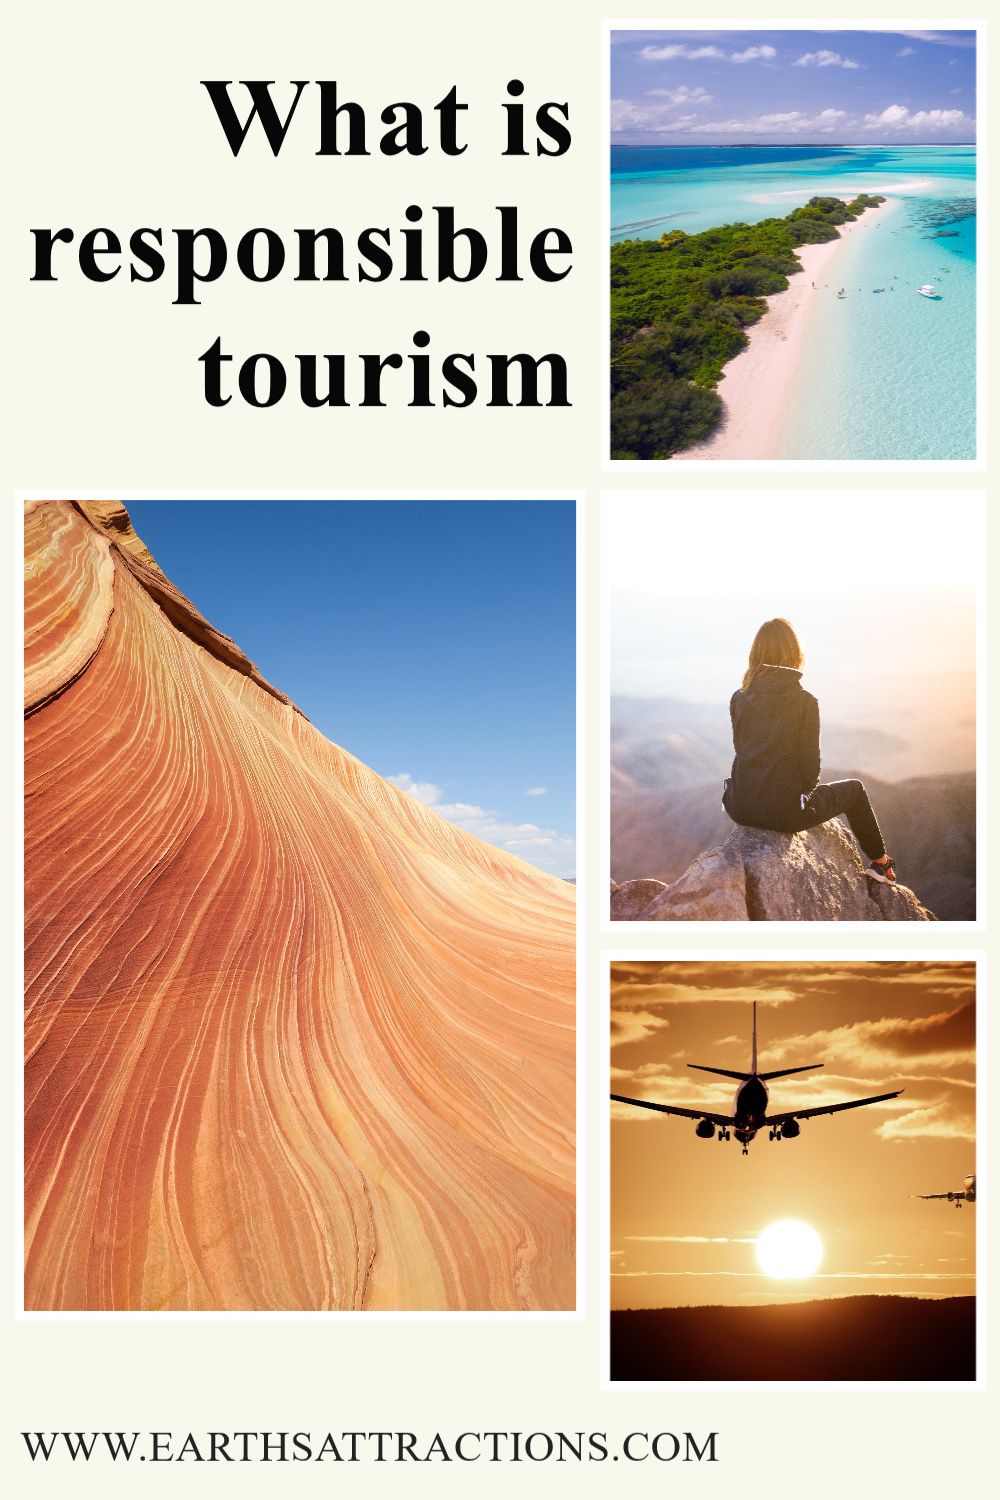 What is responsible tourism. All you need to know about traveling responsibly! #travel #traveltips #earthsattractions #responsibletravel #responsibletraveler #responsibletraveling